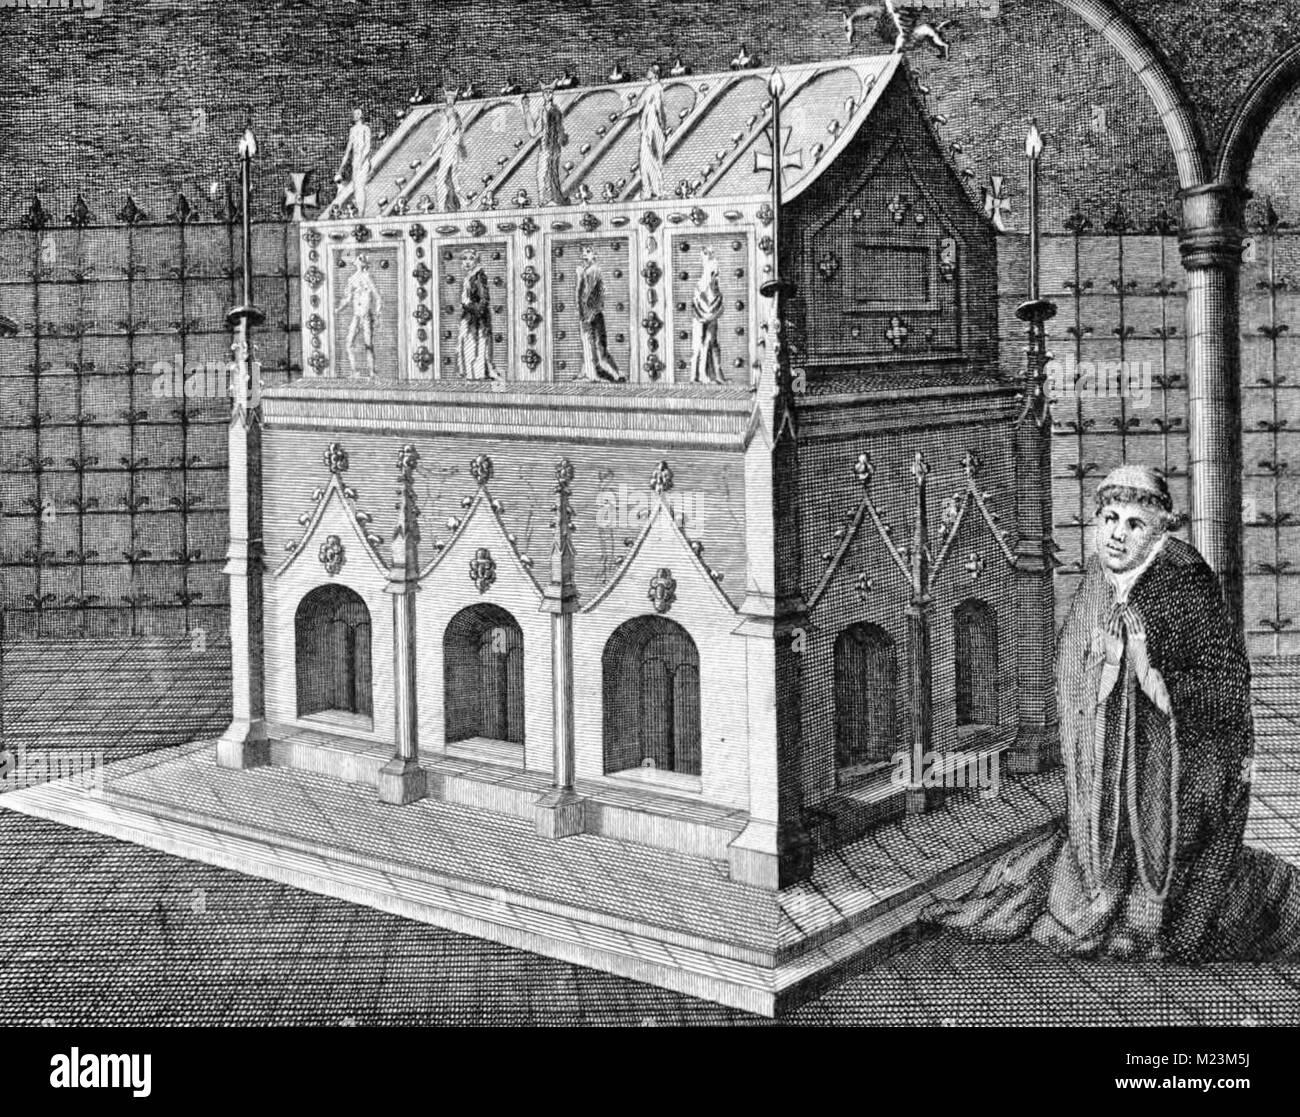 Edmund the Martyr's shrine at the Abbey at Bury St Edmunds - Stock Image